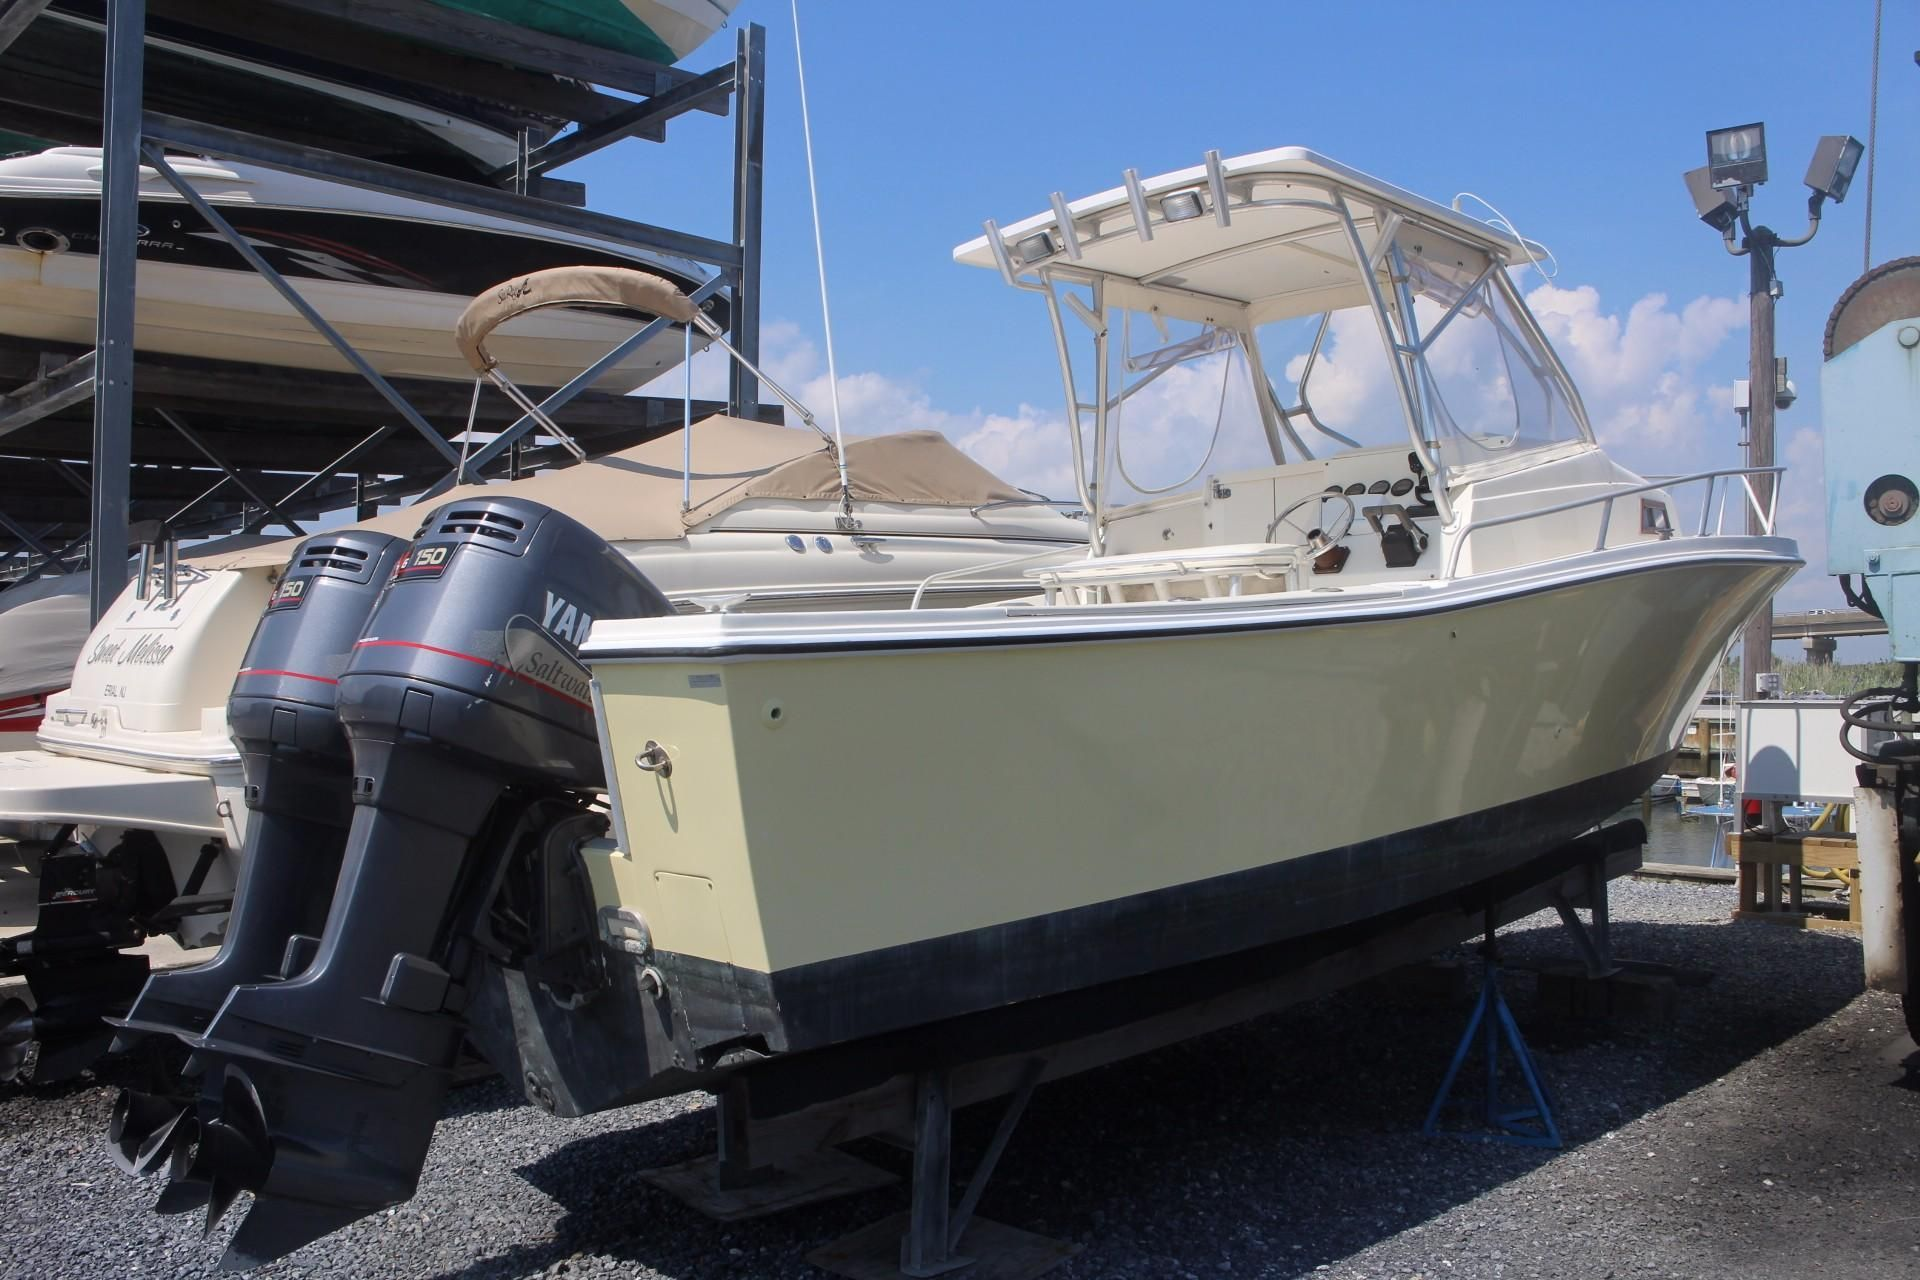 Sea Ray Boat >> 1989 Mako 25 Power Boat For Sale - www.yachtworld.com